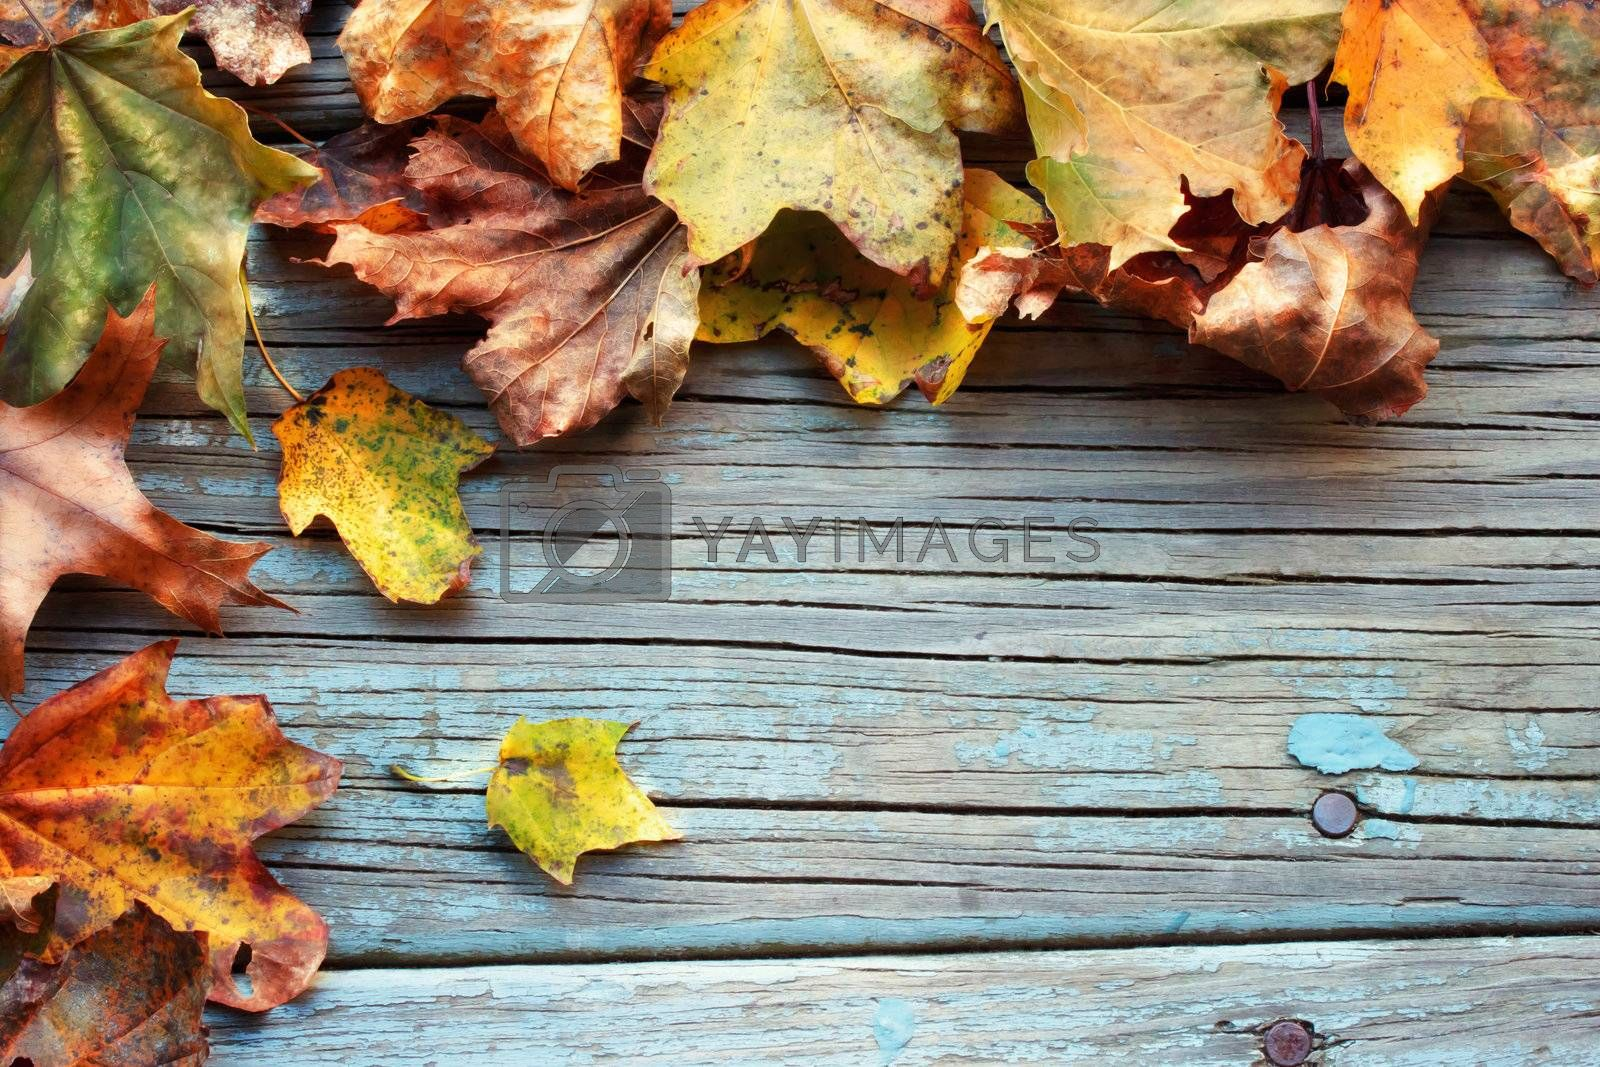 Autumn leaves on wooden board